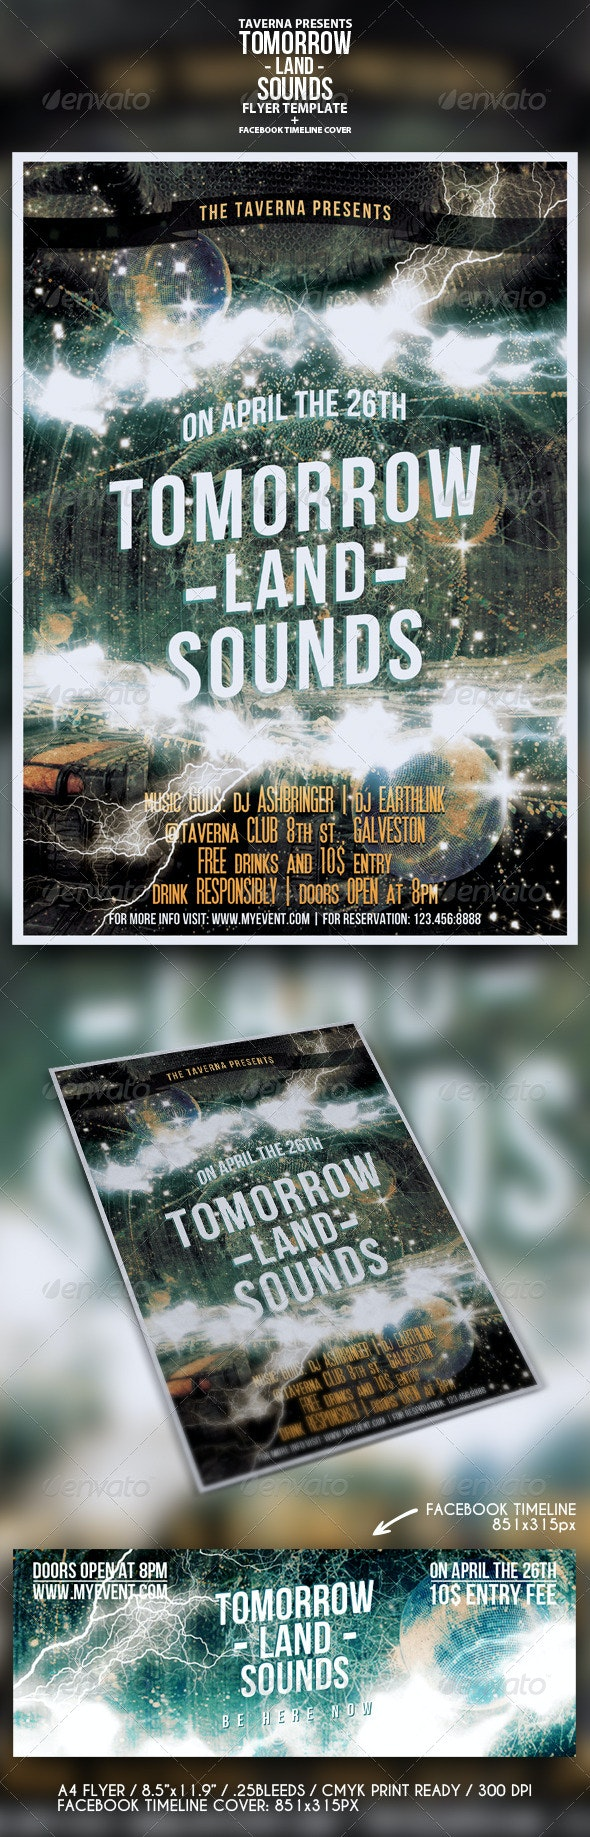 Tomorrow Land Sounds - Flyer - Concerts Events